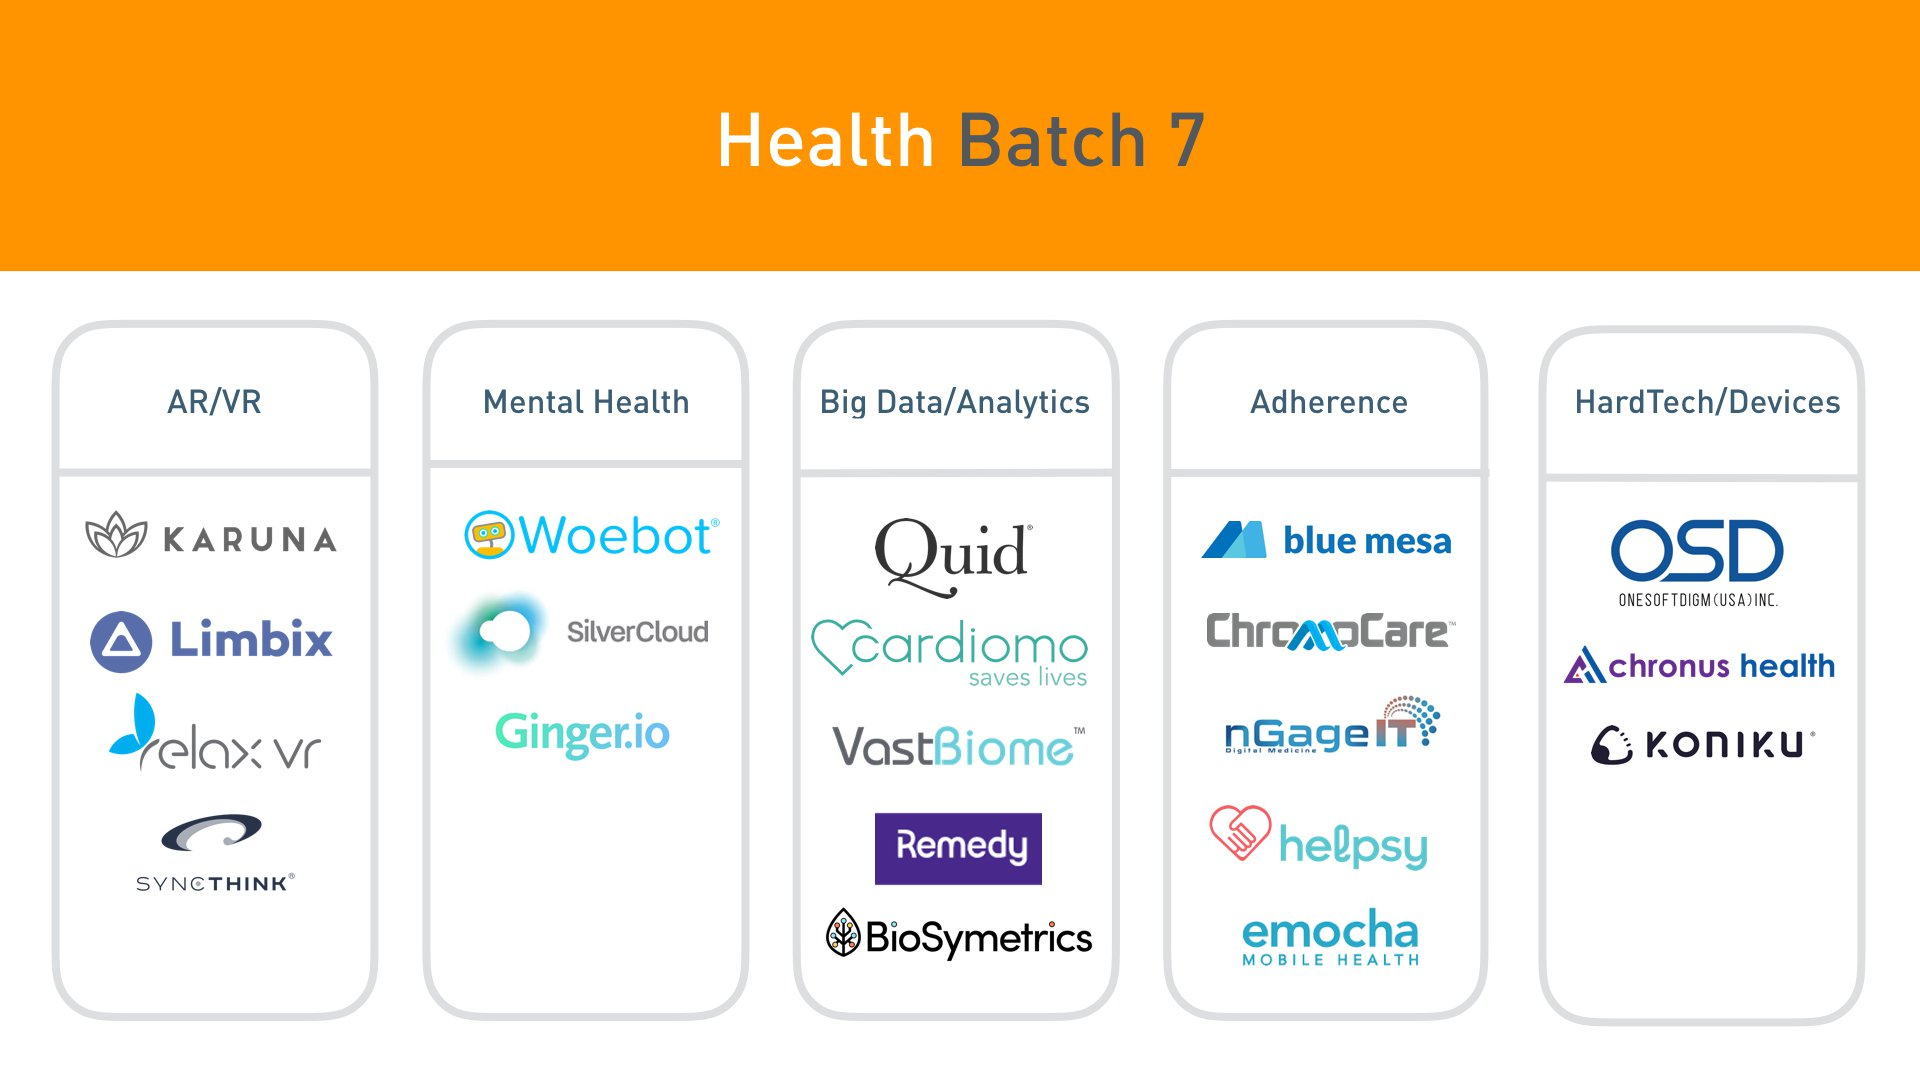 Plug and Play Health startups